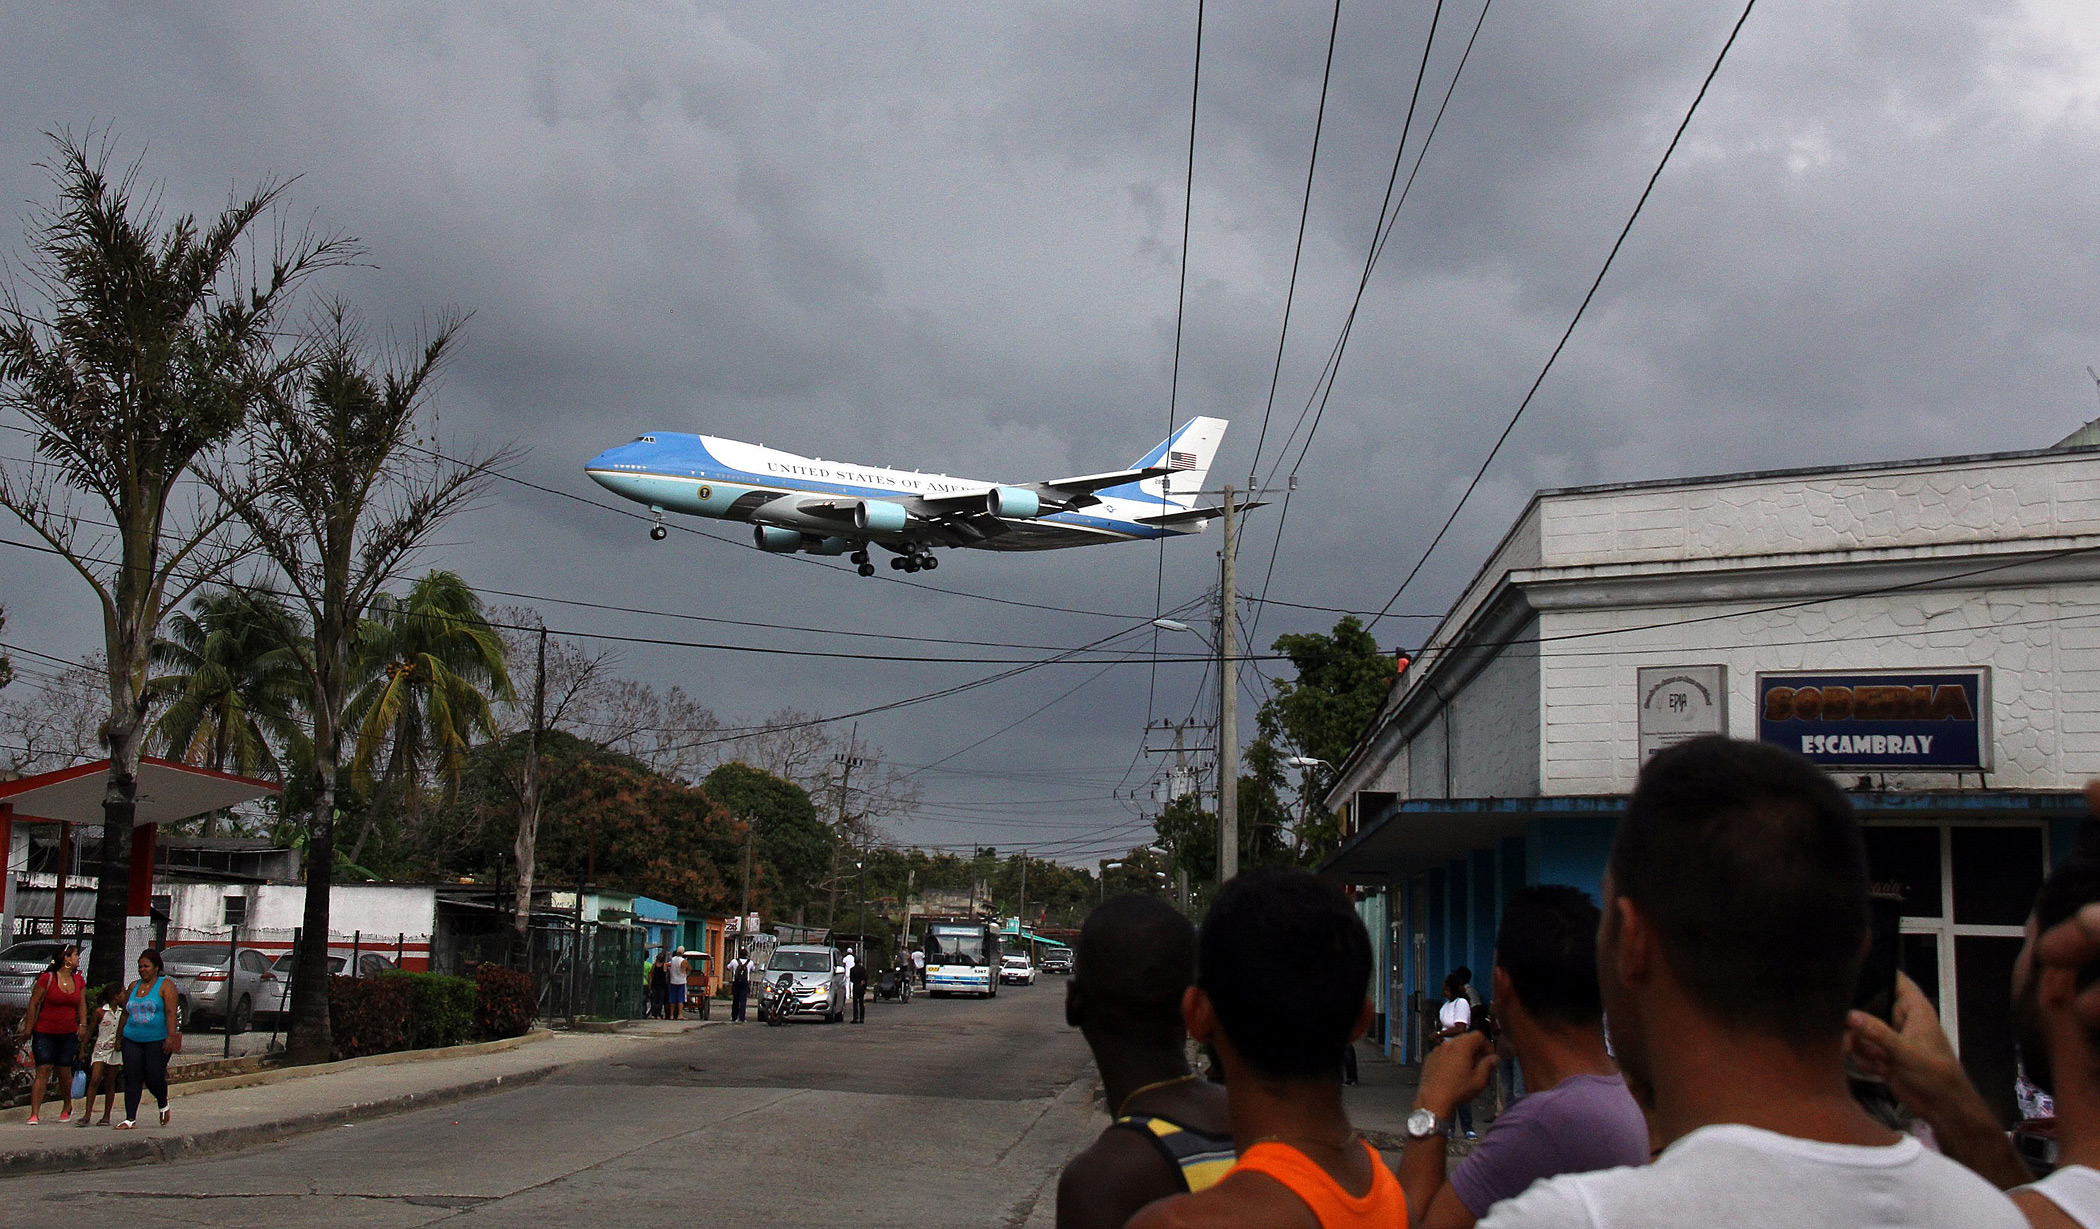 Cuban citizens wacth as Air Force One lands at Jose Marti Airport in Havana on March 20, 2016.